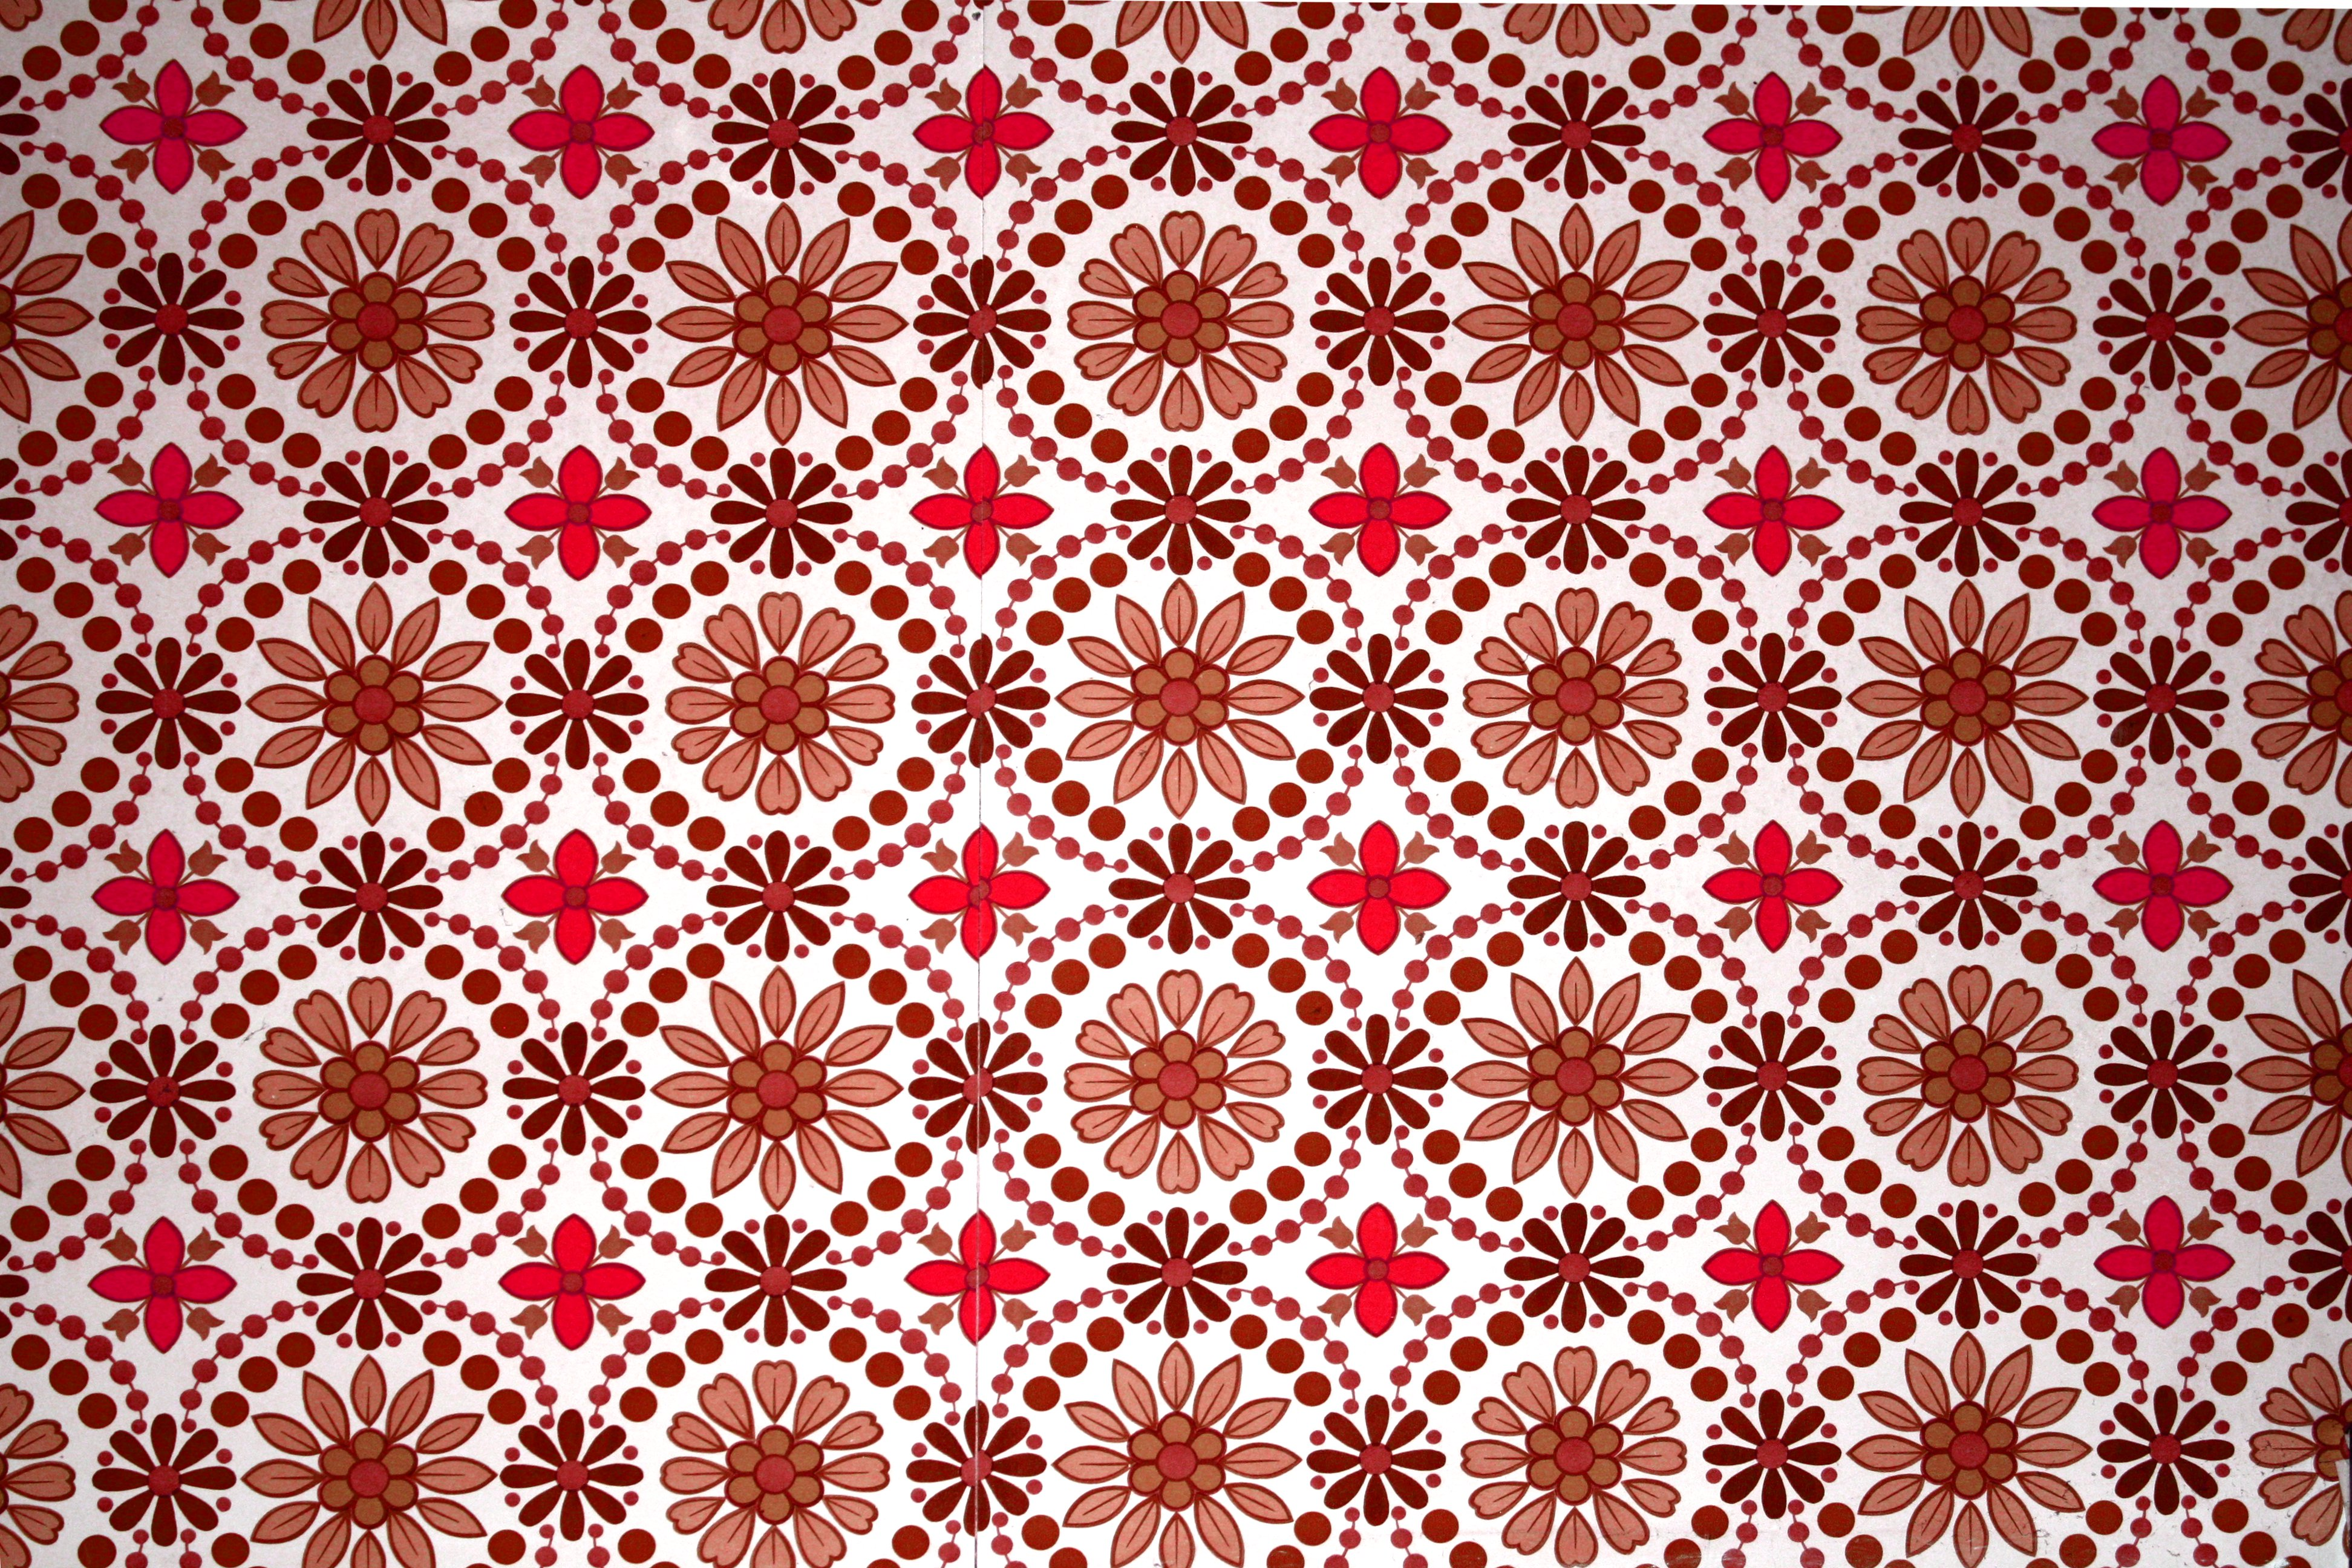 Brown and Red Flower Wallpaper Texture Picture Photograph 3888x2592